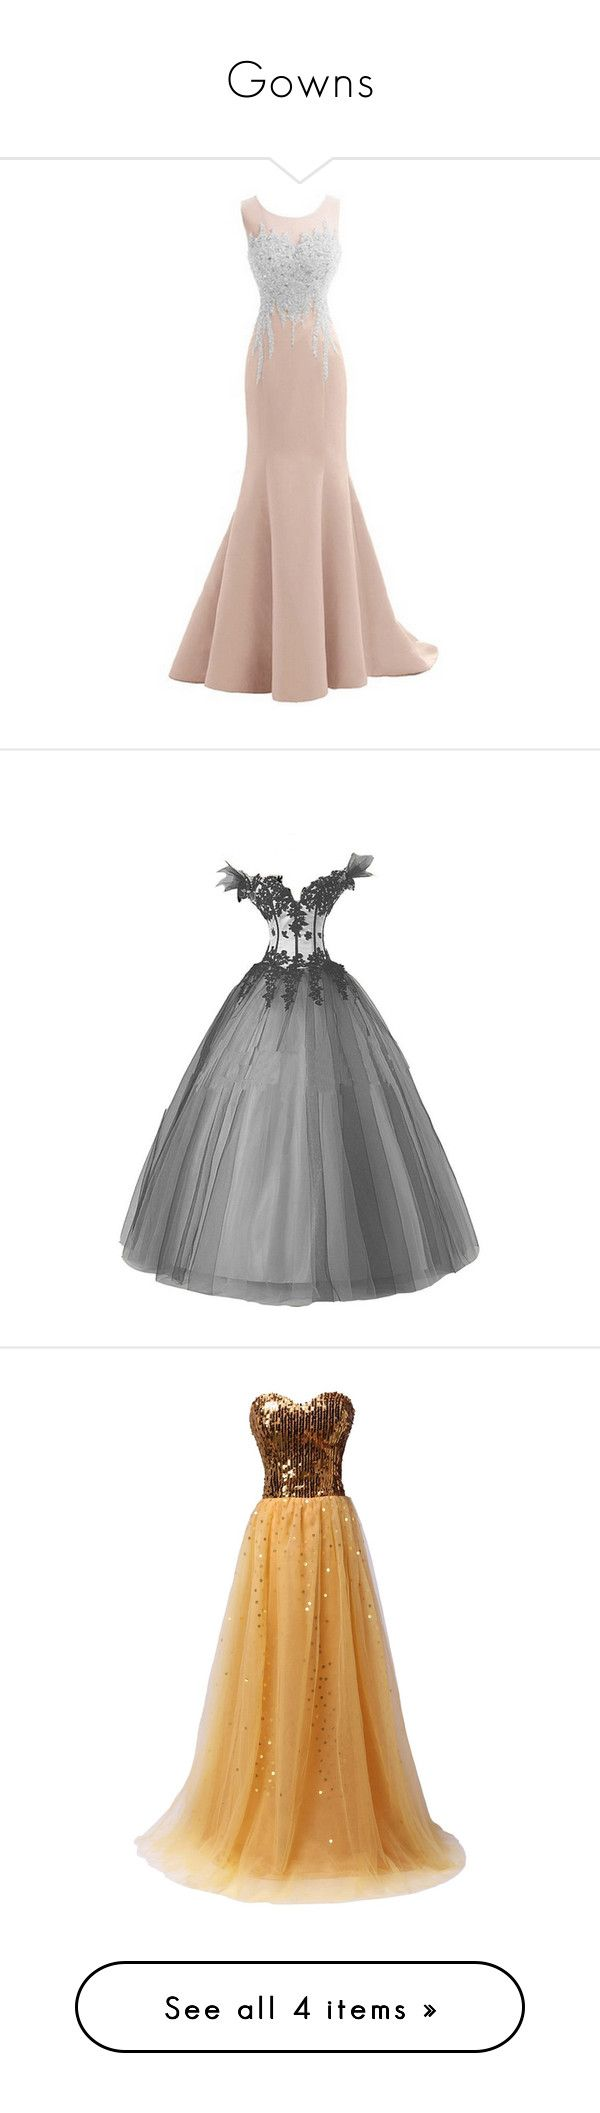 """""""Gowns"""" by morgimoo21 ❤ liked on Polyvore featuring dresses, sexy backless dresses, backless prom dresses, white prom dresses, sparkly homecoming dresses, sexy white dresses, gowns, long dress, robe and black and white evening gowns"""